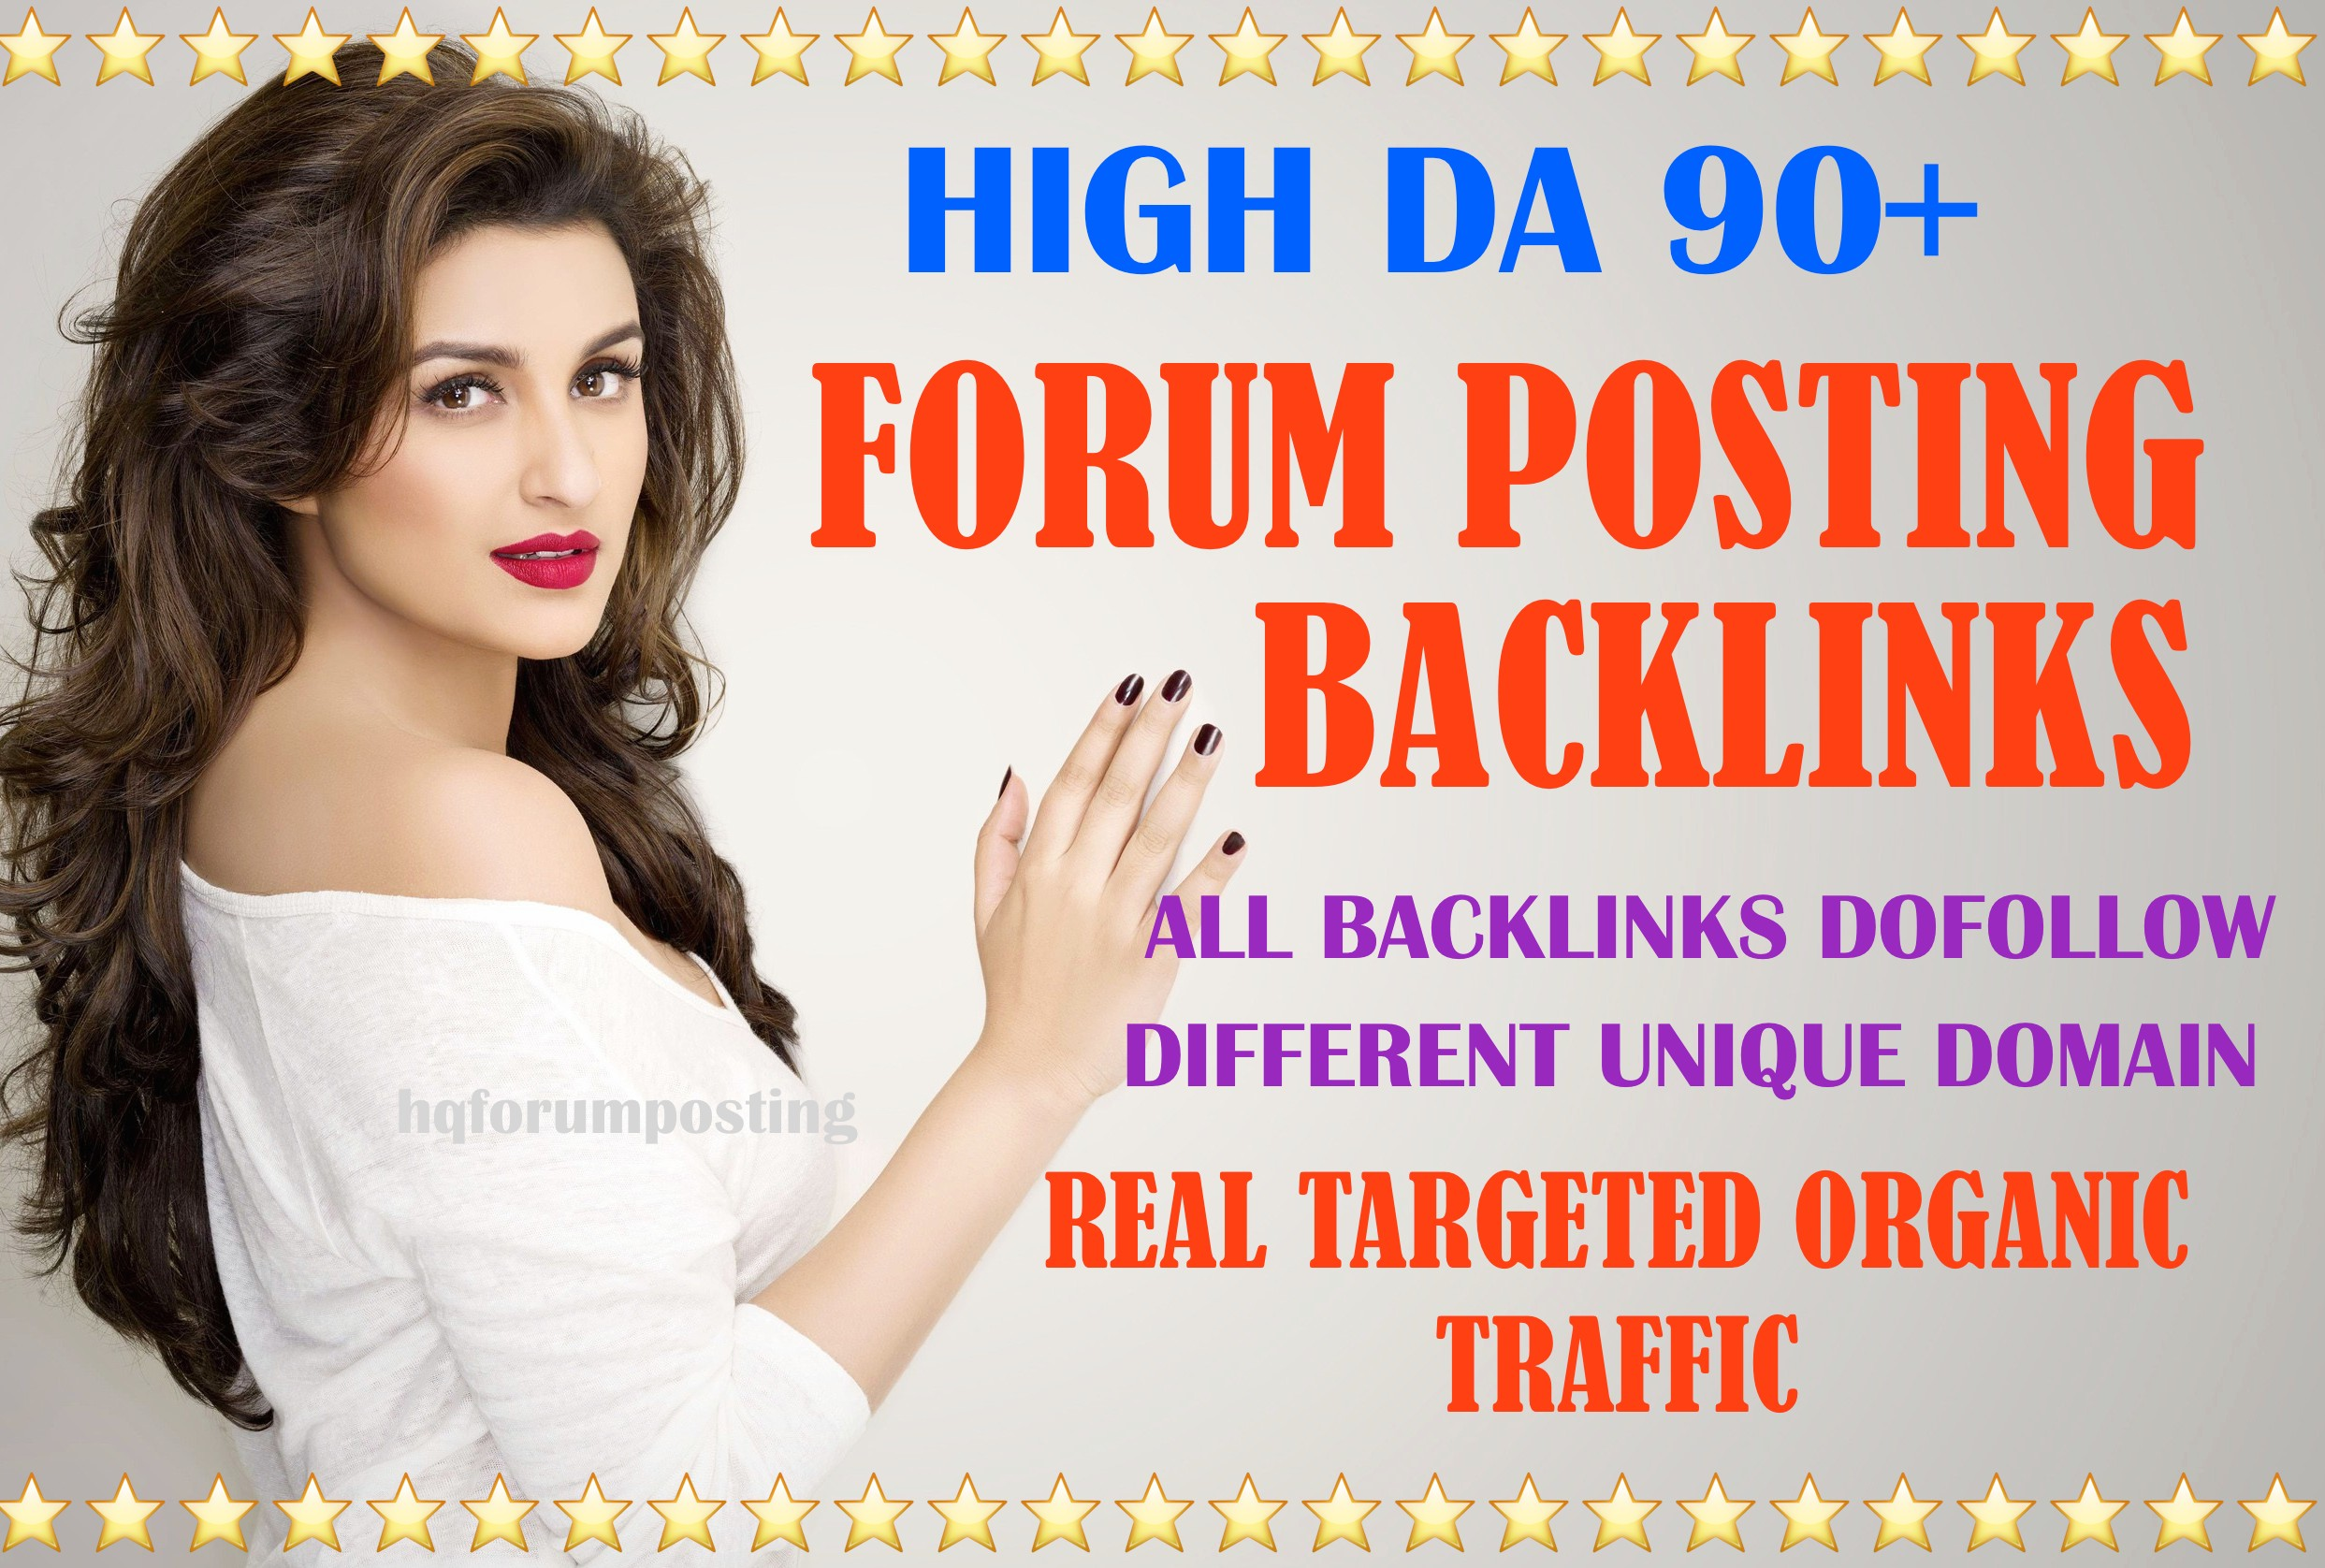 20 High authority DA 50+ forum posting backlinks